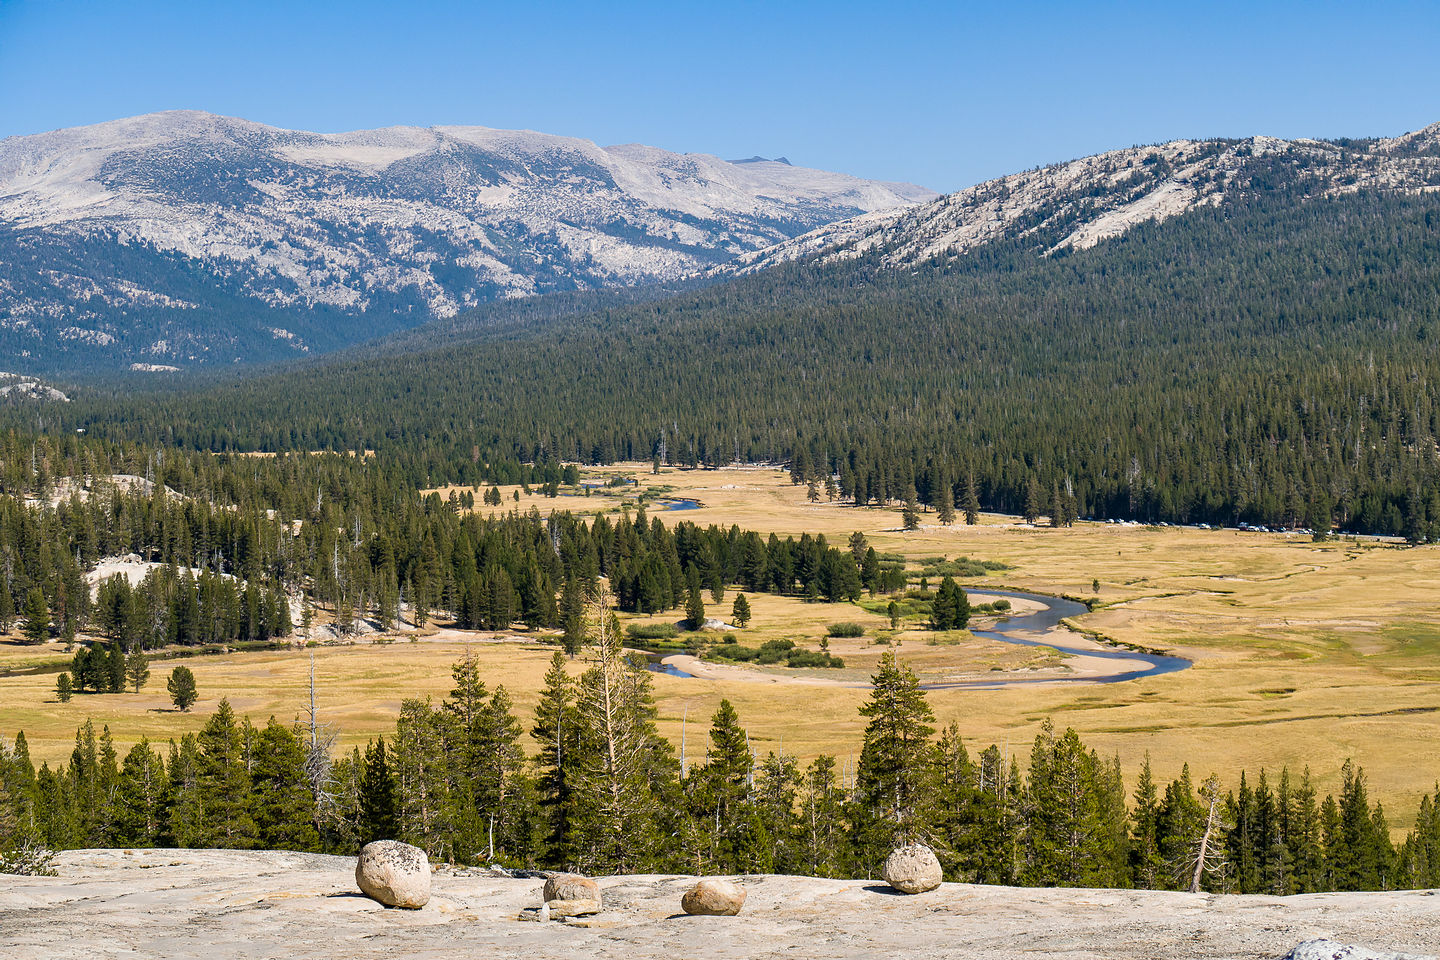 View of Tuolumne Meadows from atop Pothole Dome